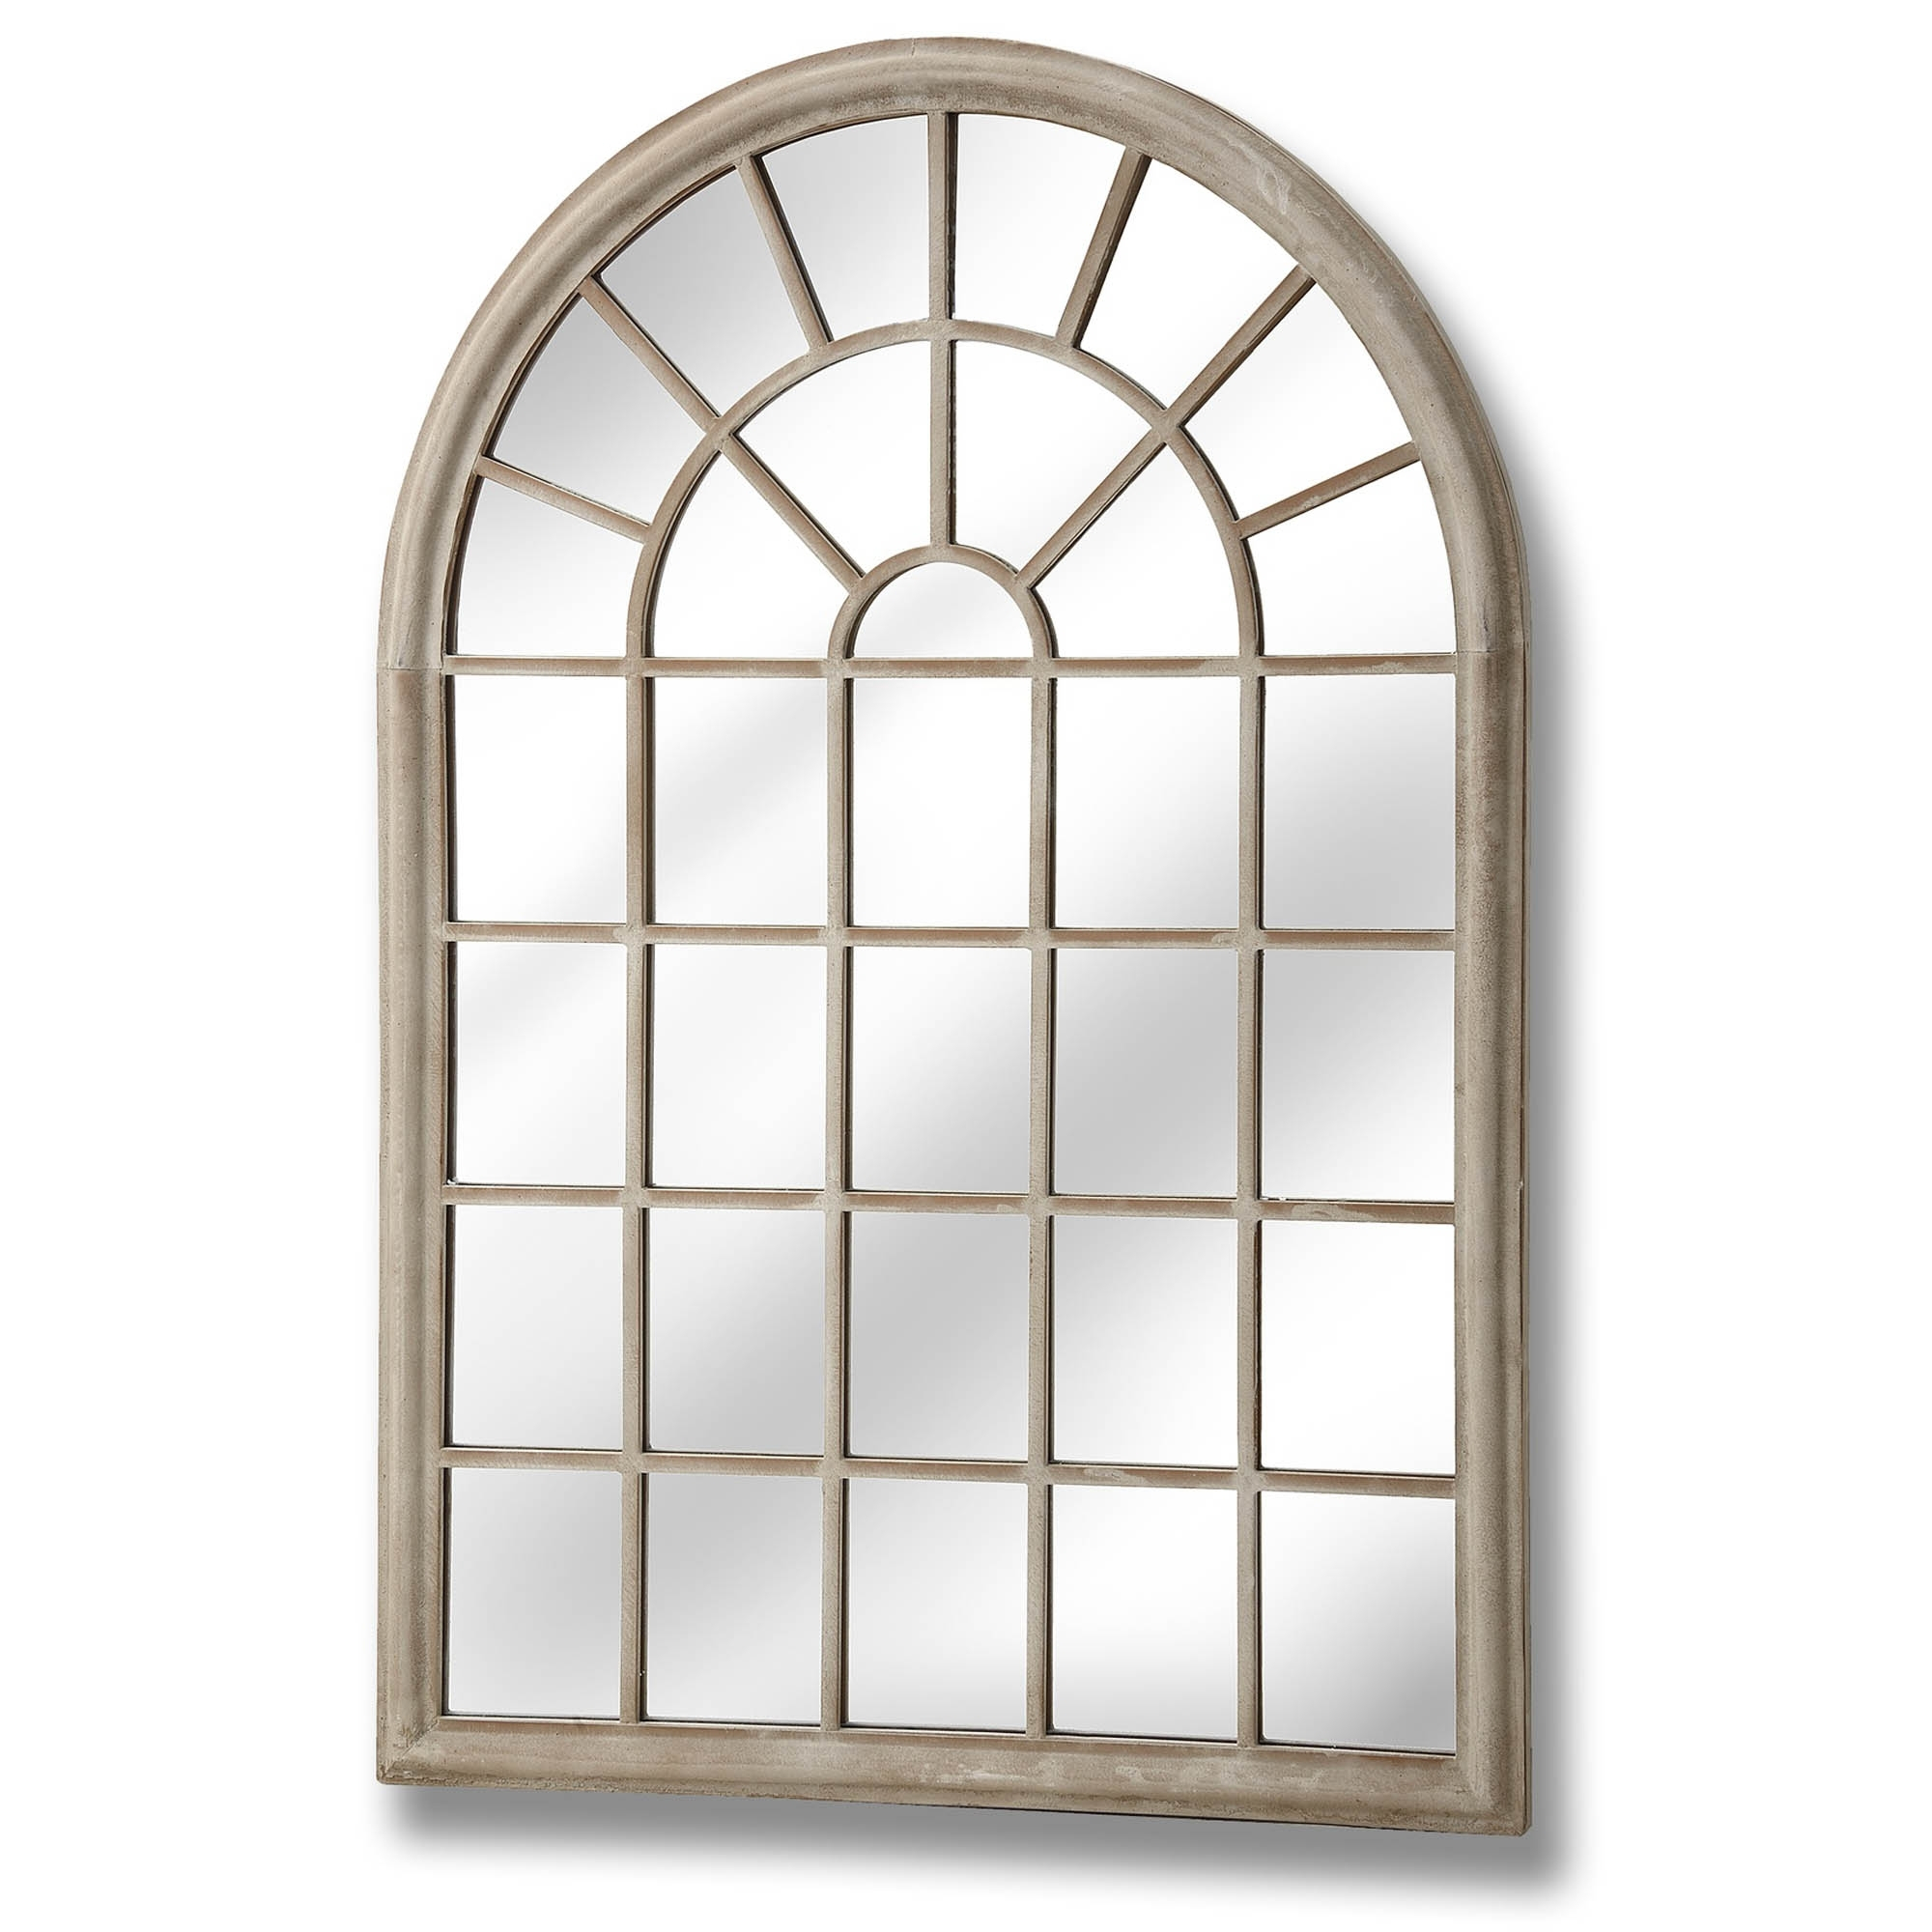 Large Rustic Arched Window Wall Mirror Within Metal Arch Window Wall Mirrors (Image 13 of 20)